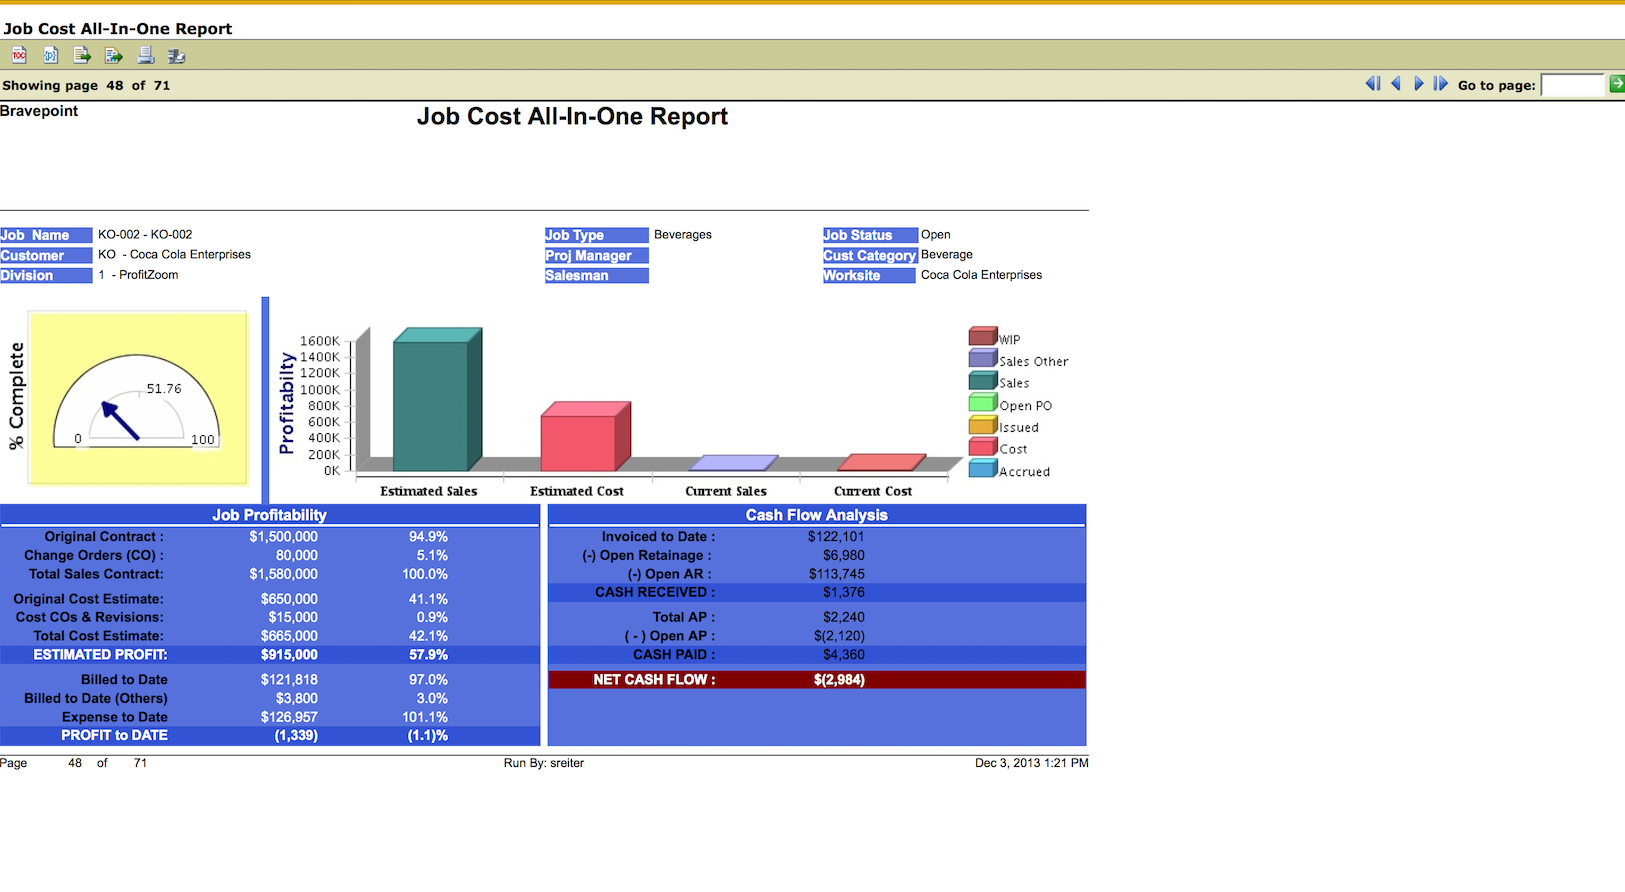 Jobs all report